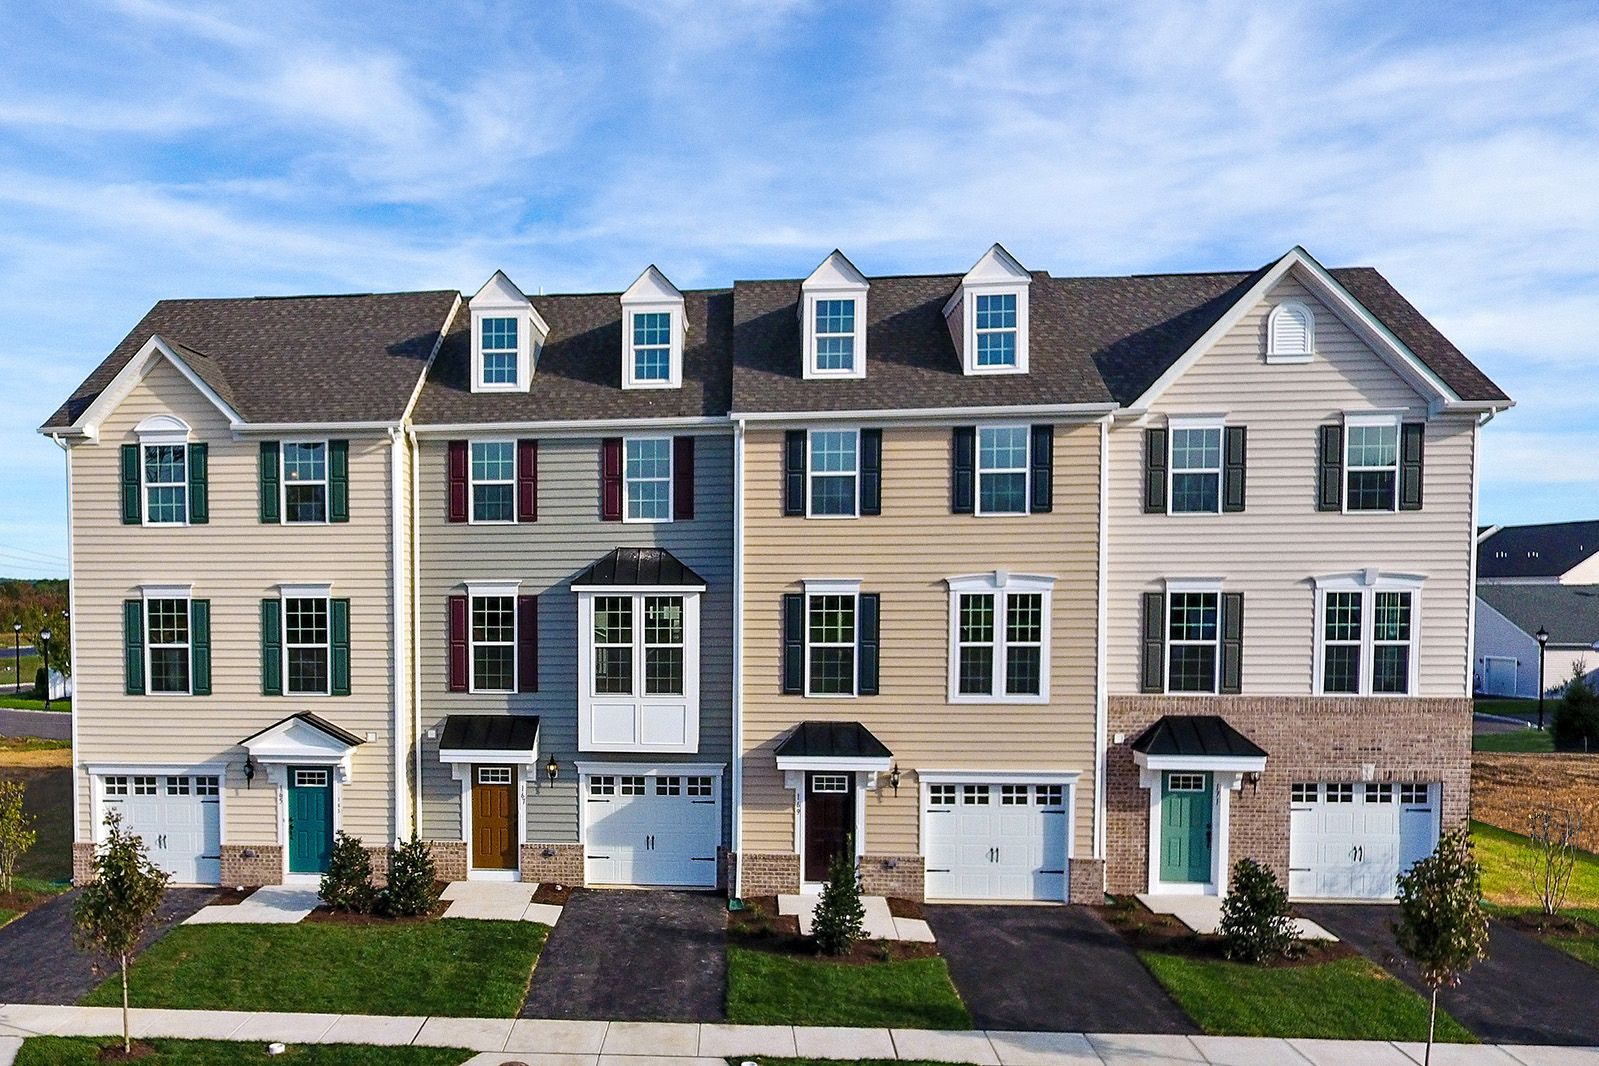 WELCOME TO WHITEWOOD VILLAGE:Lowest price for a new townhome in Newark with included garage and deck, overlooking your back yard with lawn care included.Click here to schedule your appointment today.